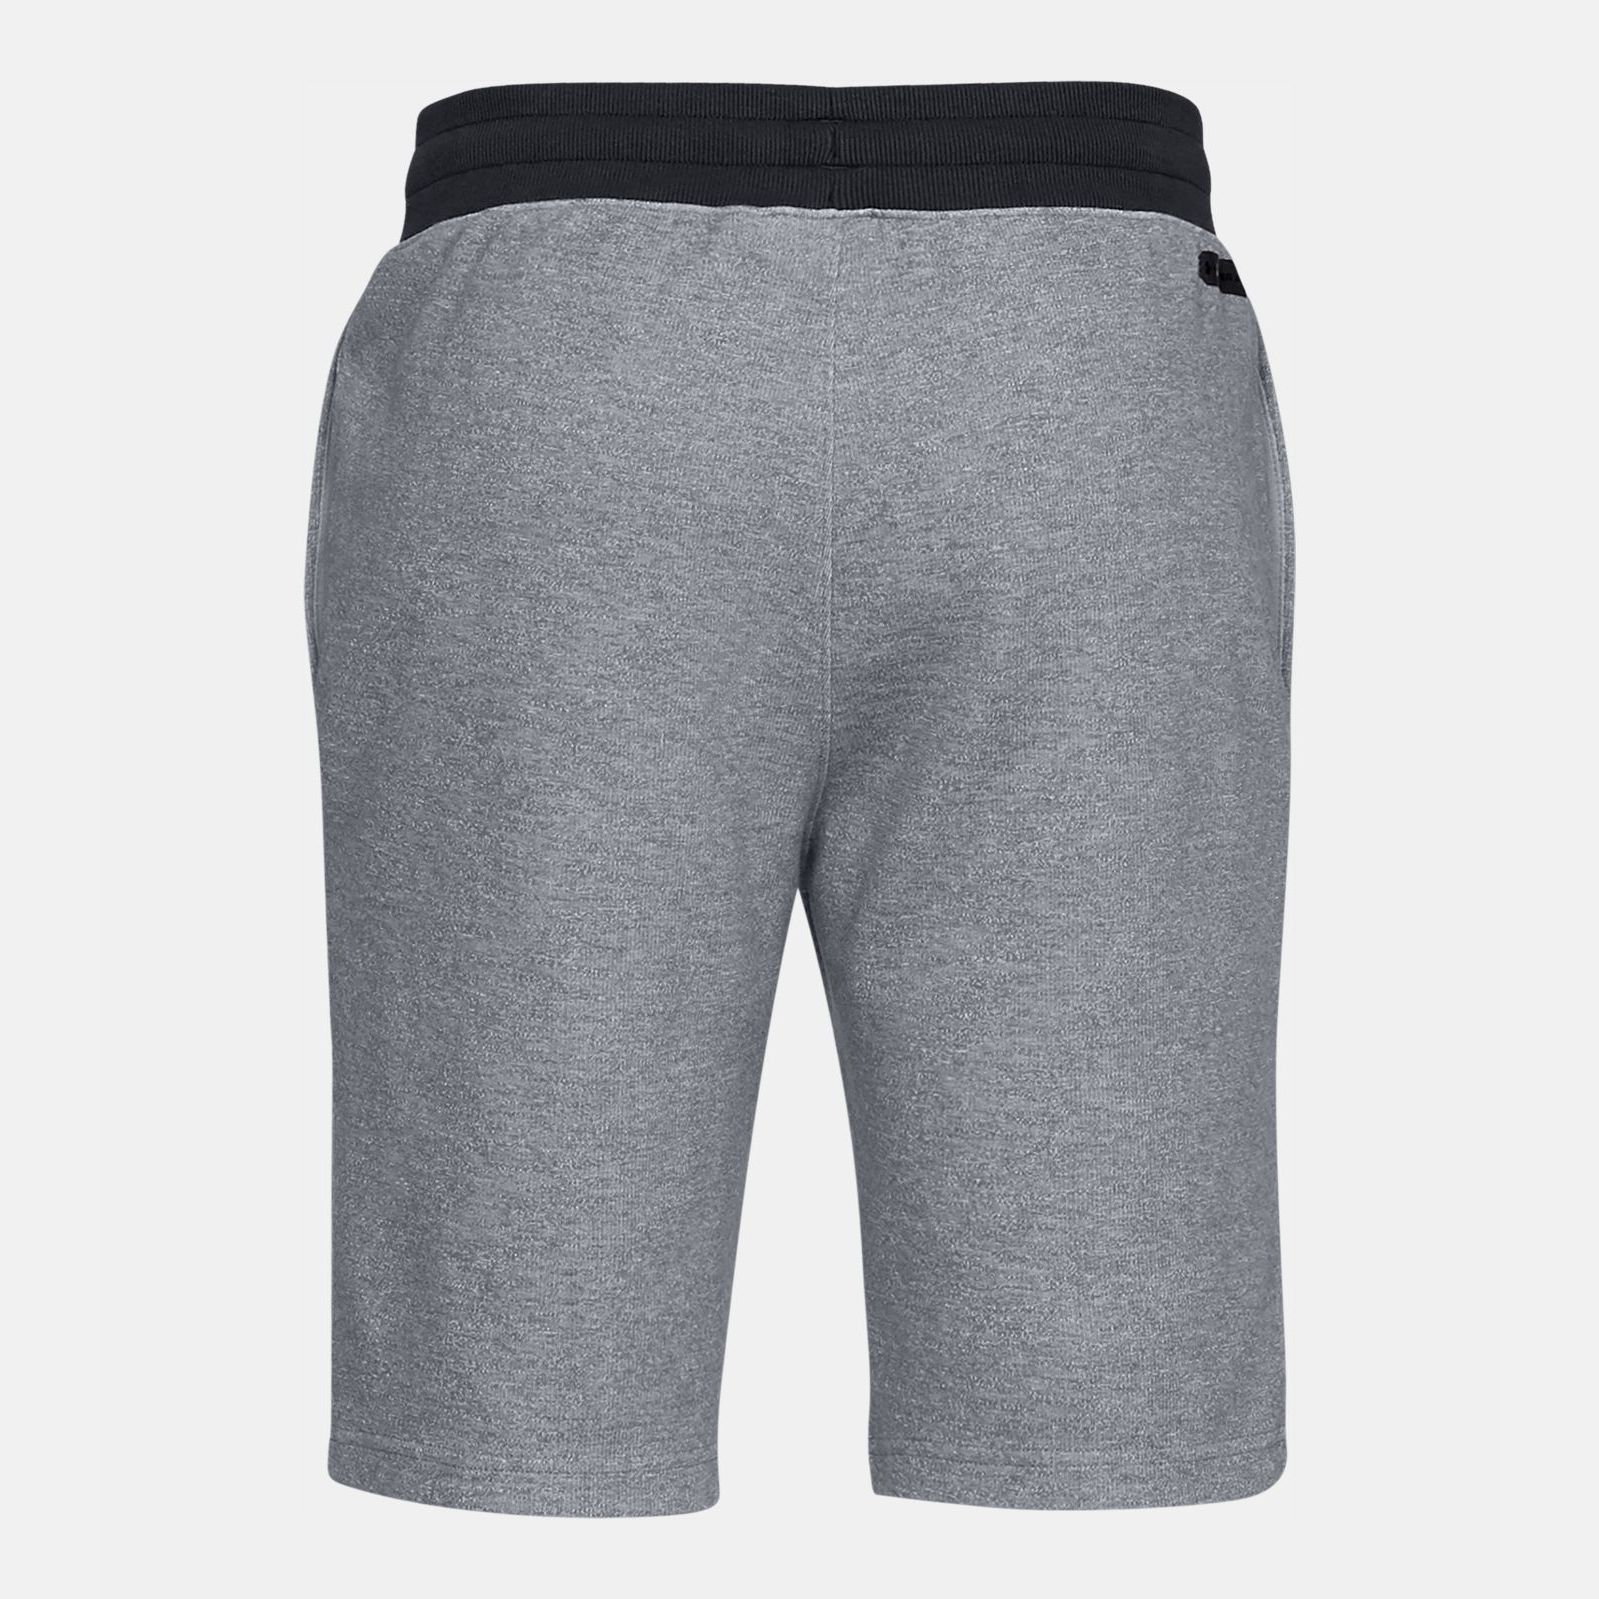 Clothing -  under armour Unstoppable Double Knit 9714